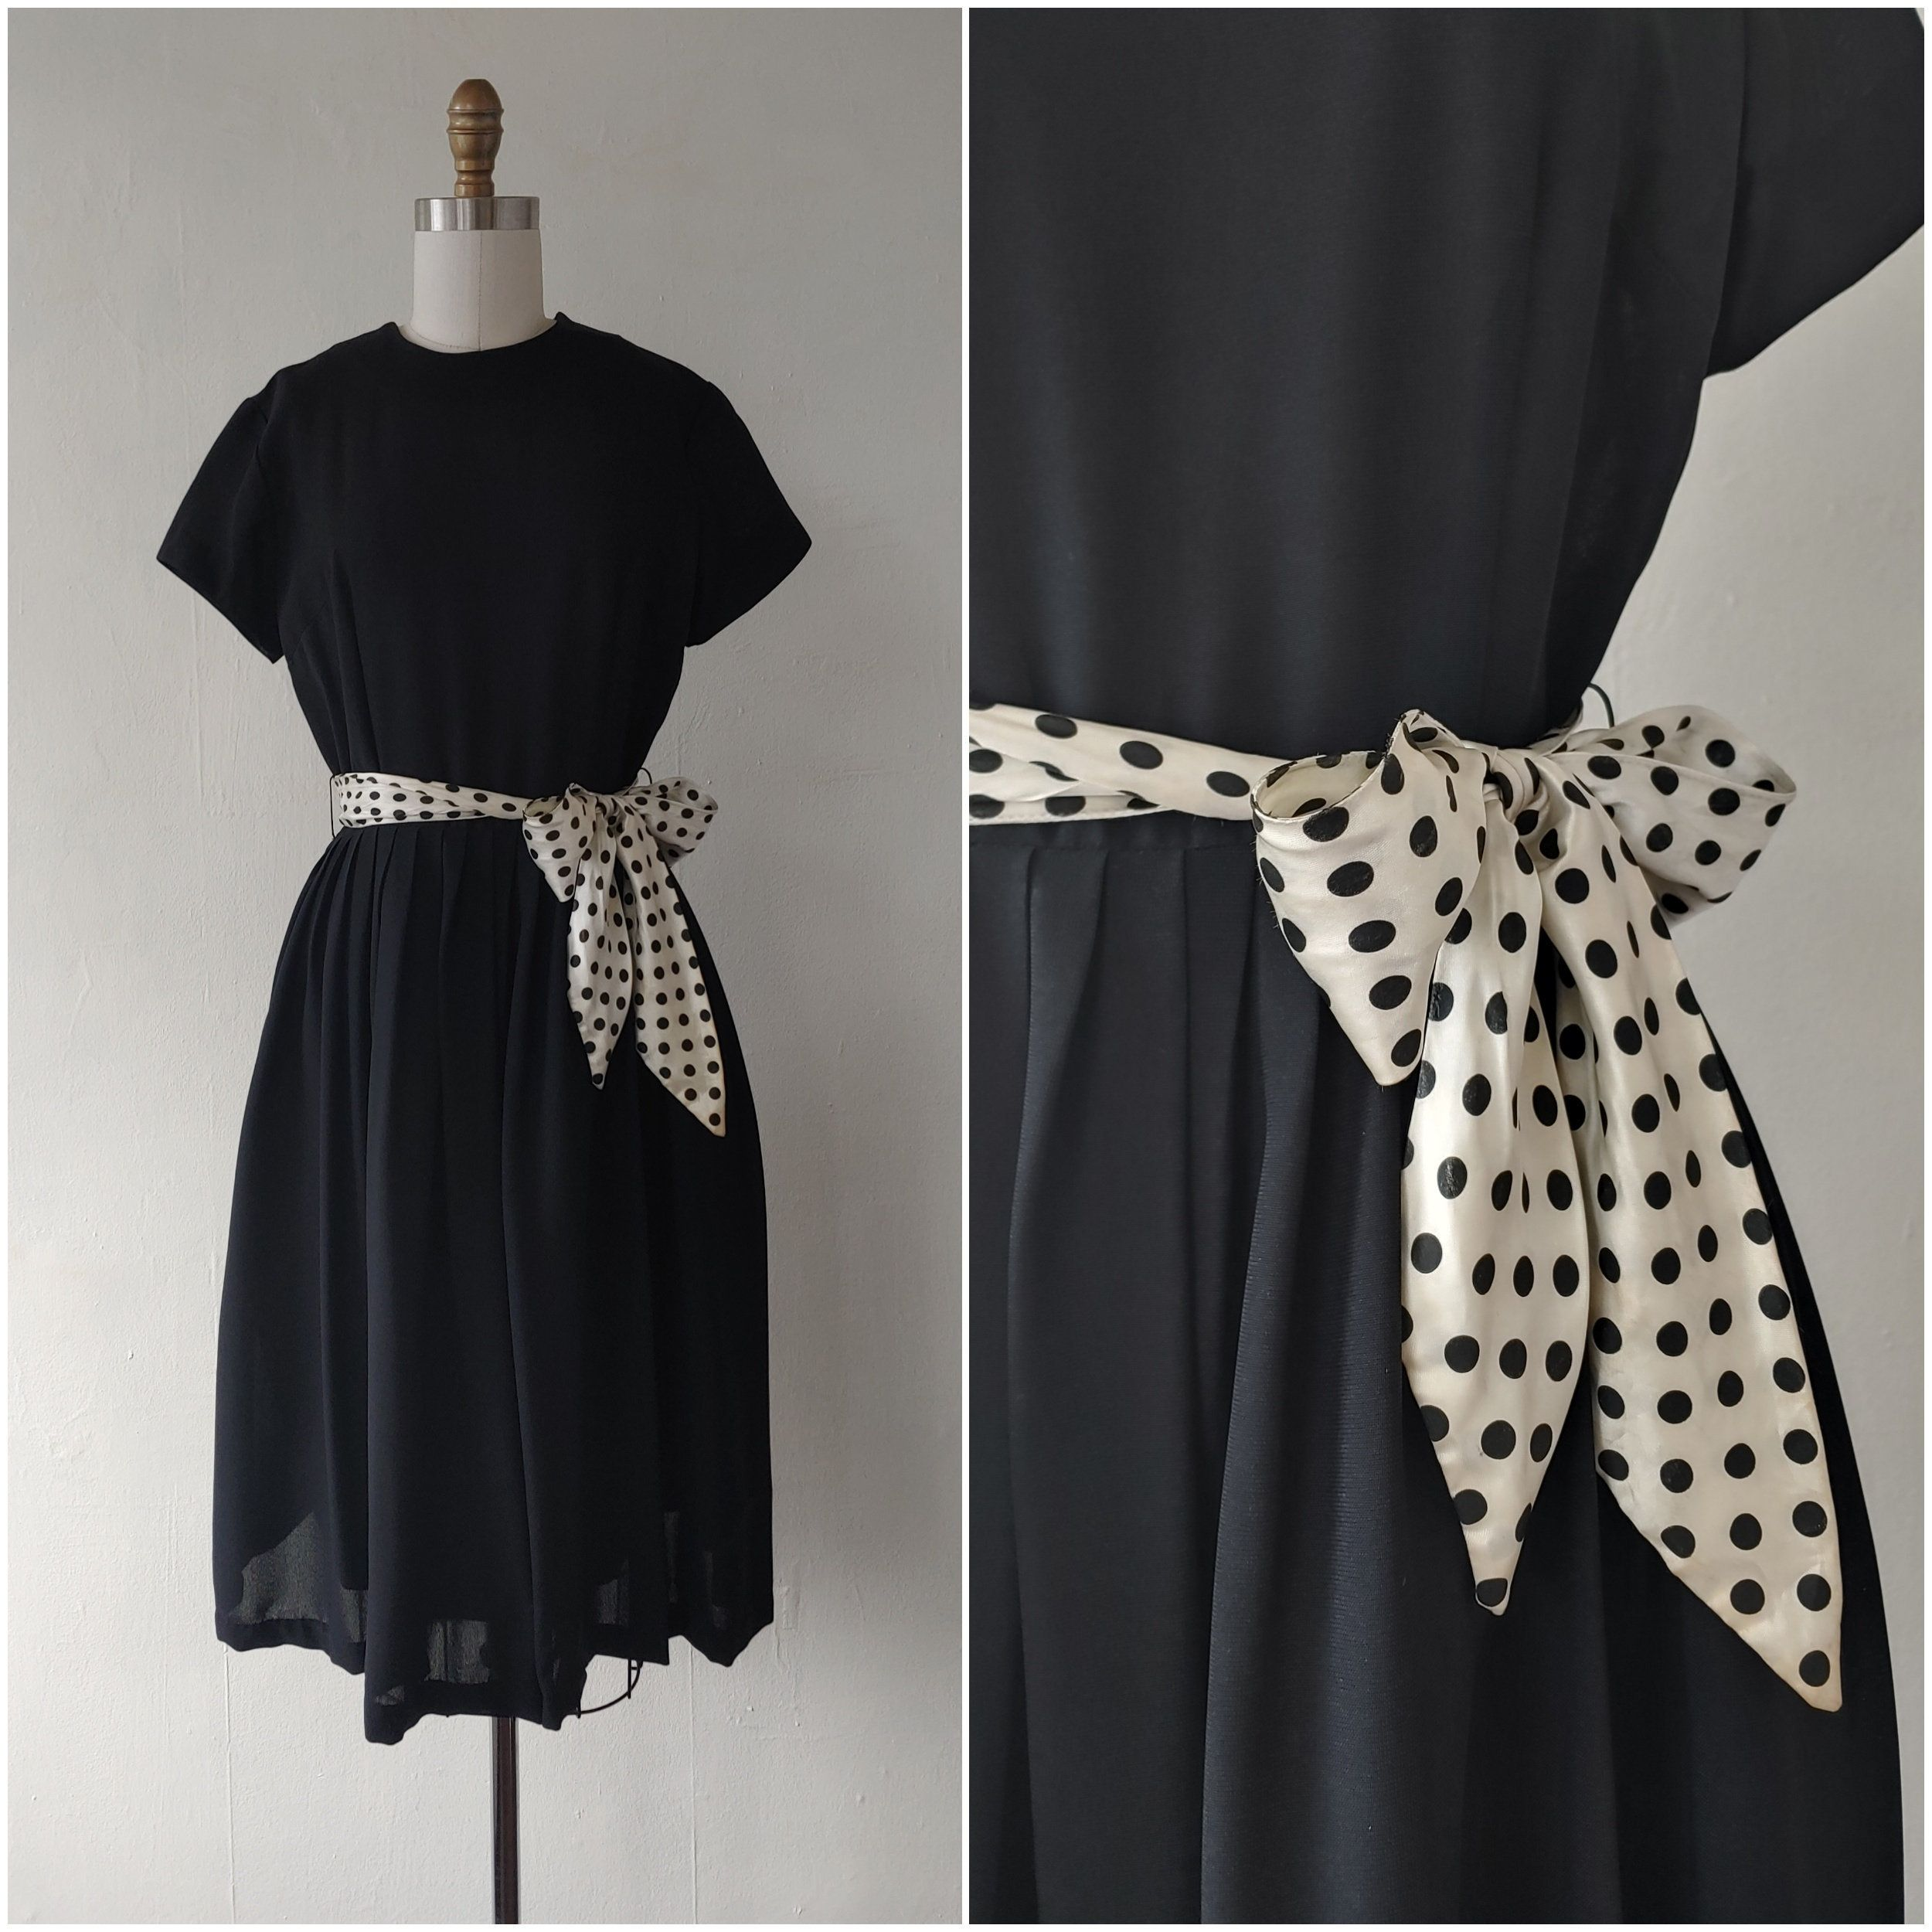 Vintage 1960s Black Dress With White And Black Polka Dot Tie Up Belt Small By Vivianvintage8 On Etsy 60s Fashion Black Dress Dresses [ 2500 x 2500 Pixel ]